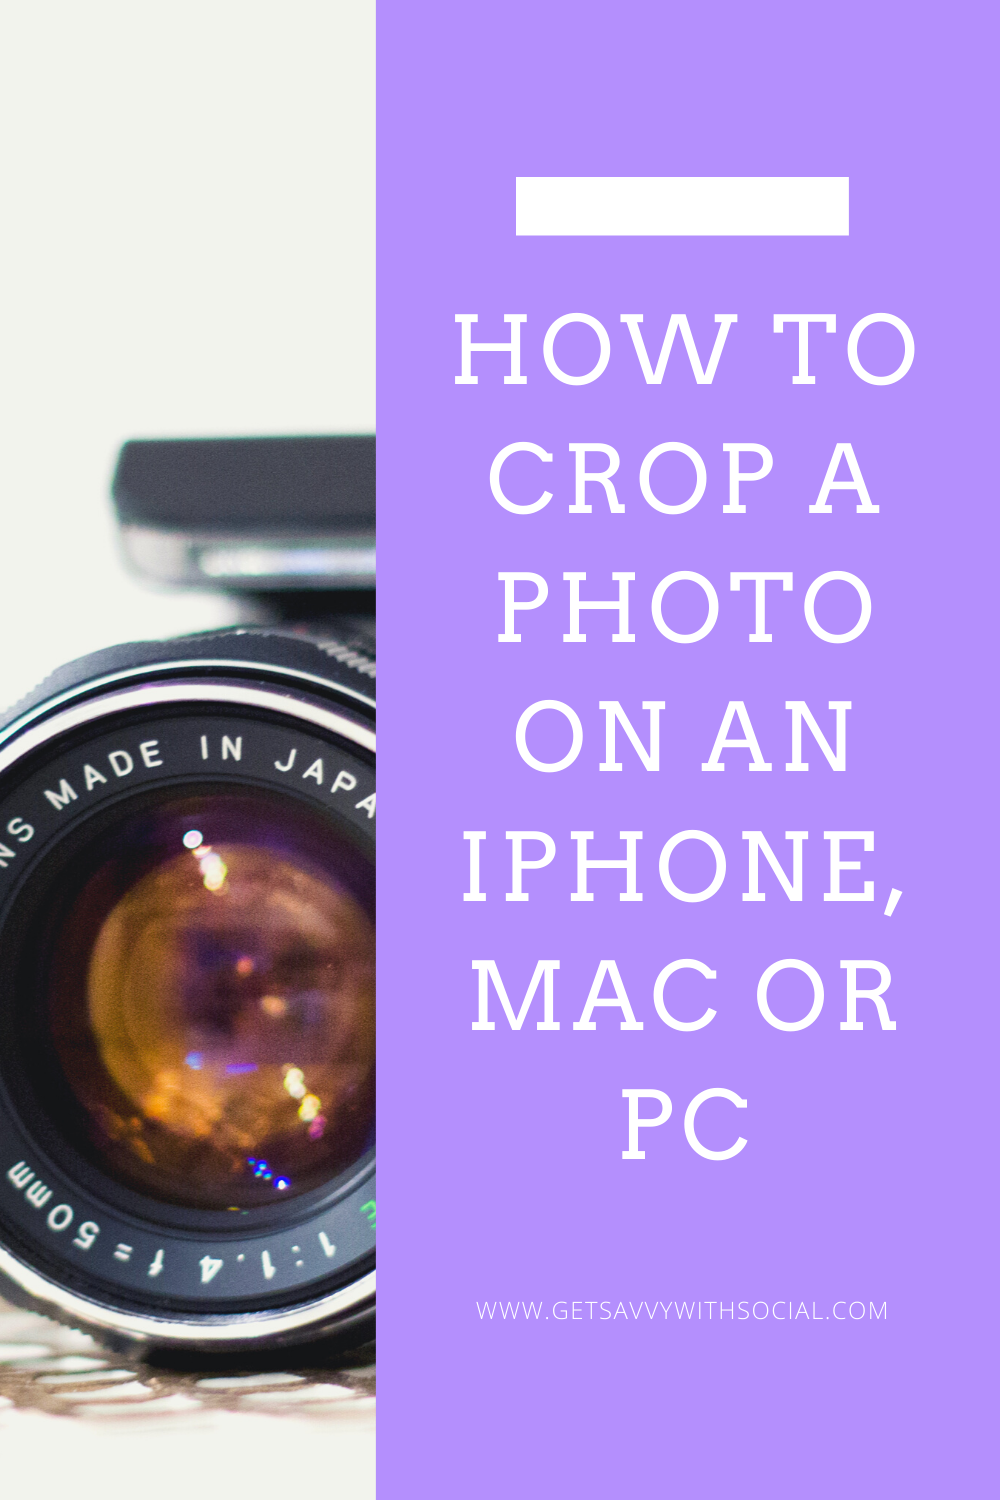 How To Crop A Photo On An Iphone Mac Or Pc Get Savvy With Social Basic Editing Crop Pictures Photo Apps